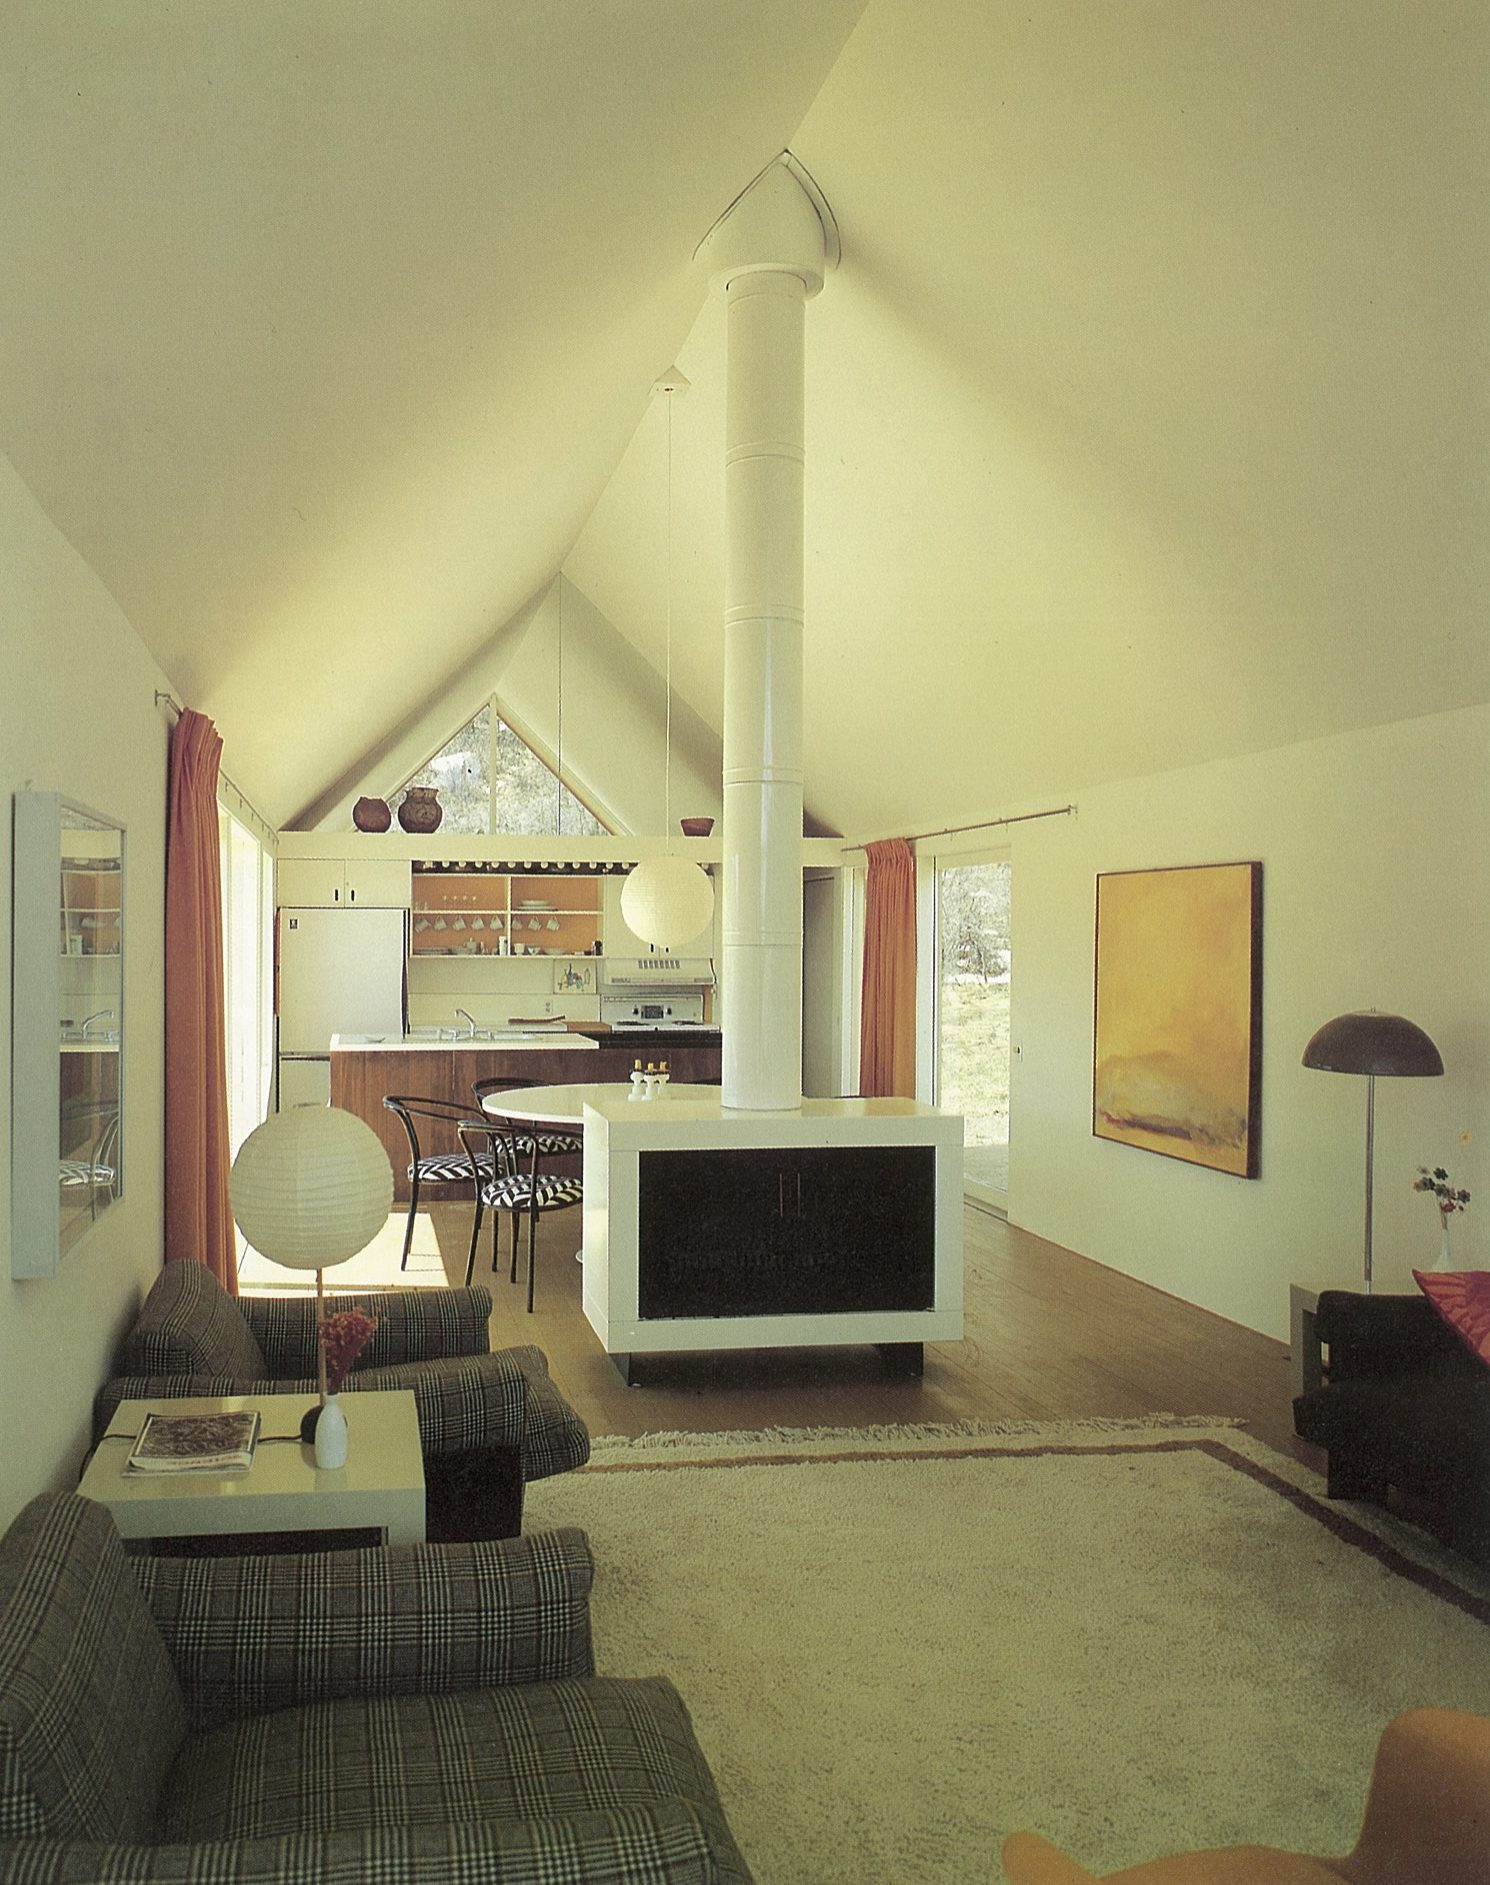 Harry Weese's Lavateili House in Snowmass, Colorado — interior